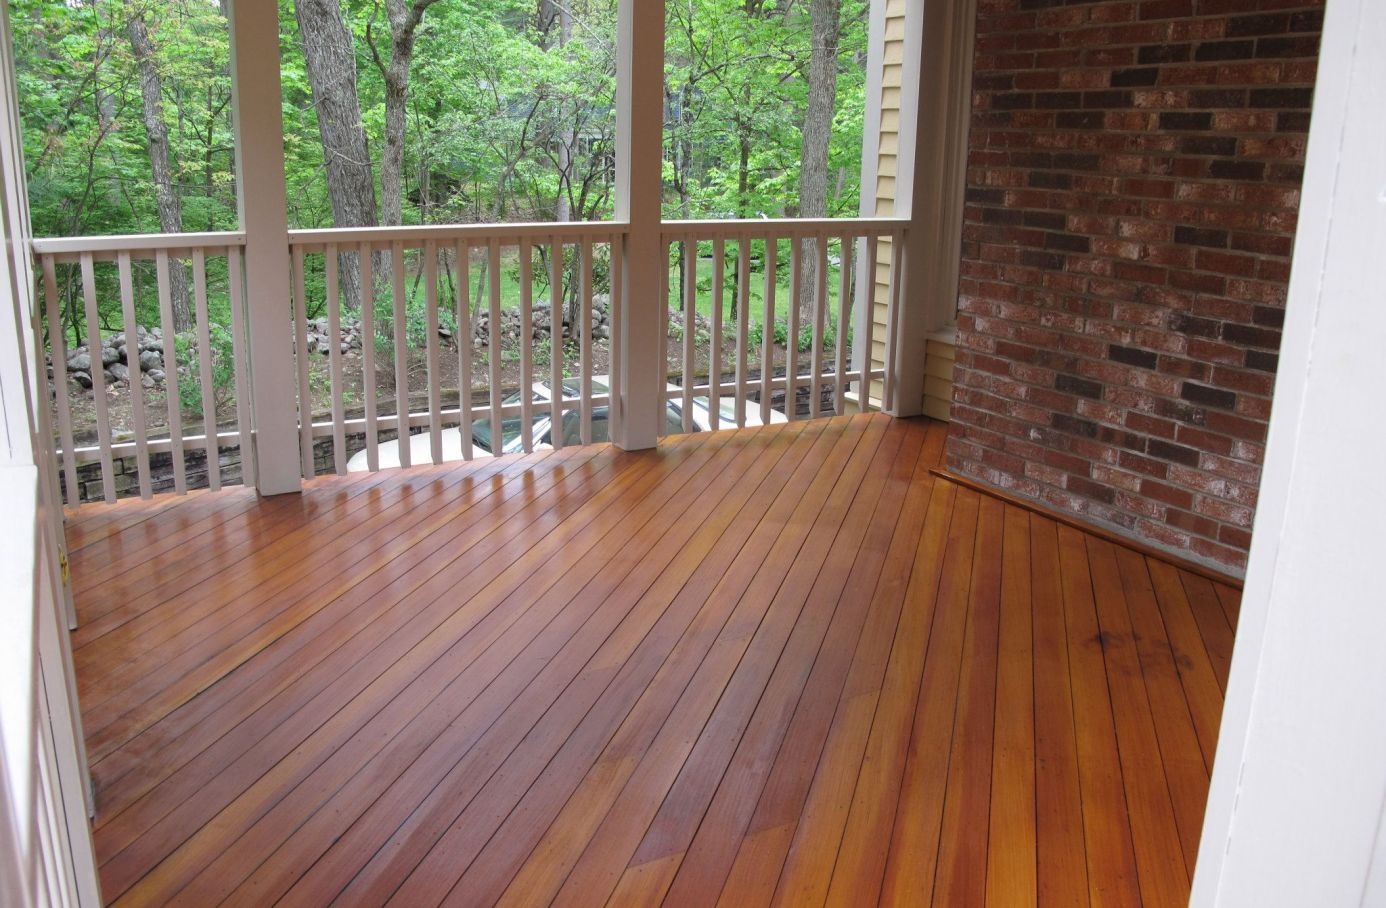 Douglas Fir Decking With Teak Stain Sealer And Opaque Navajo White Color On Rails Staining Deck Deck Design Deck Restoration